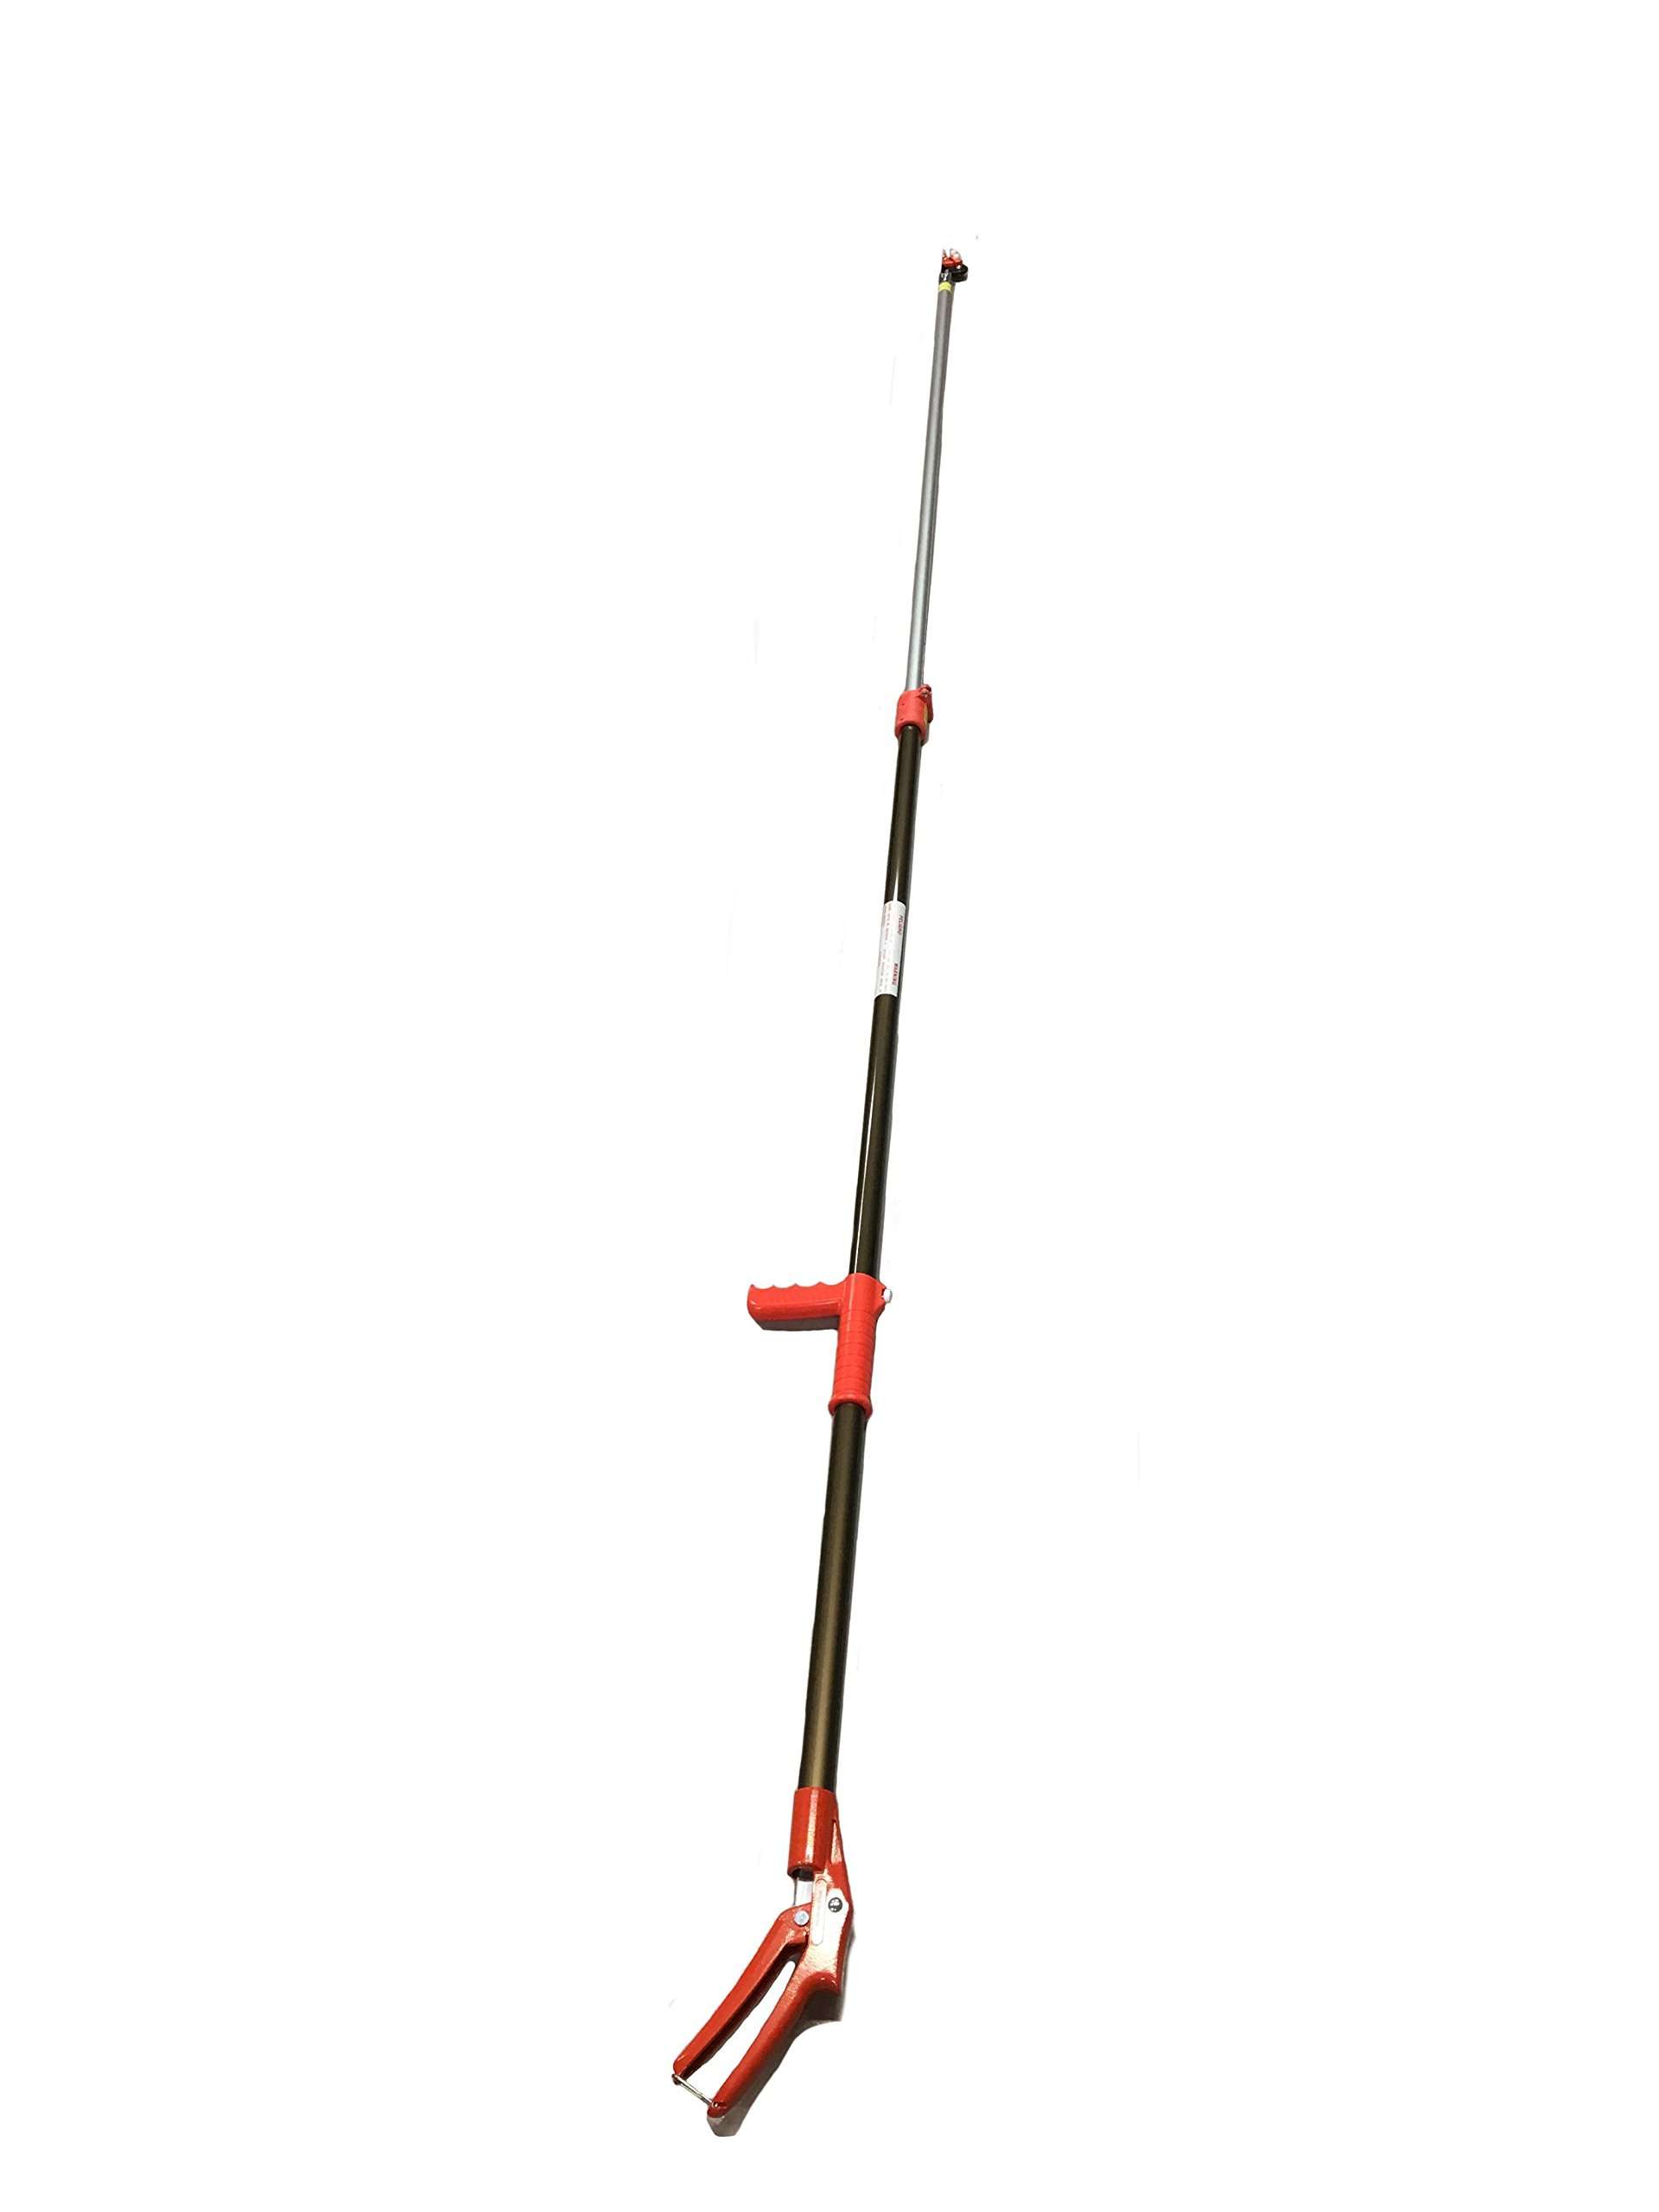 Nobi Telescopic Long Reach Pruner With Pruning Saw Ext 50'' to 79'' Made In Japan